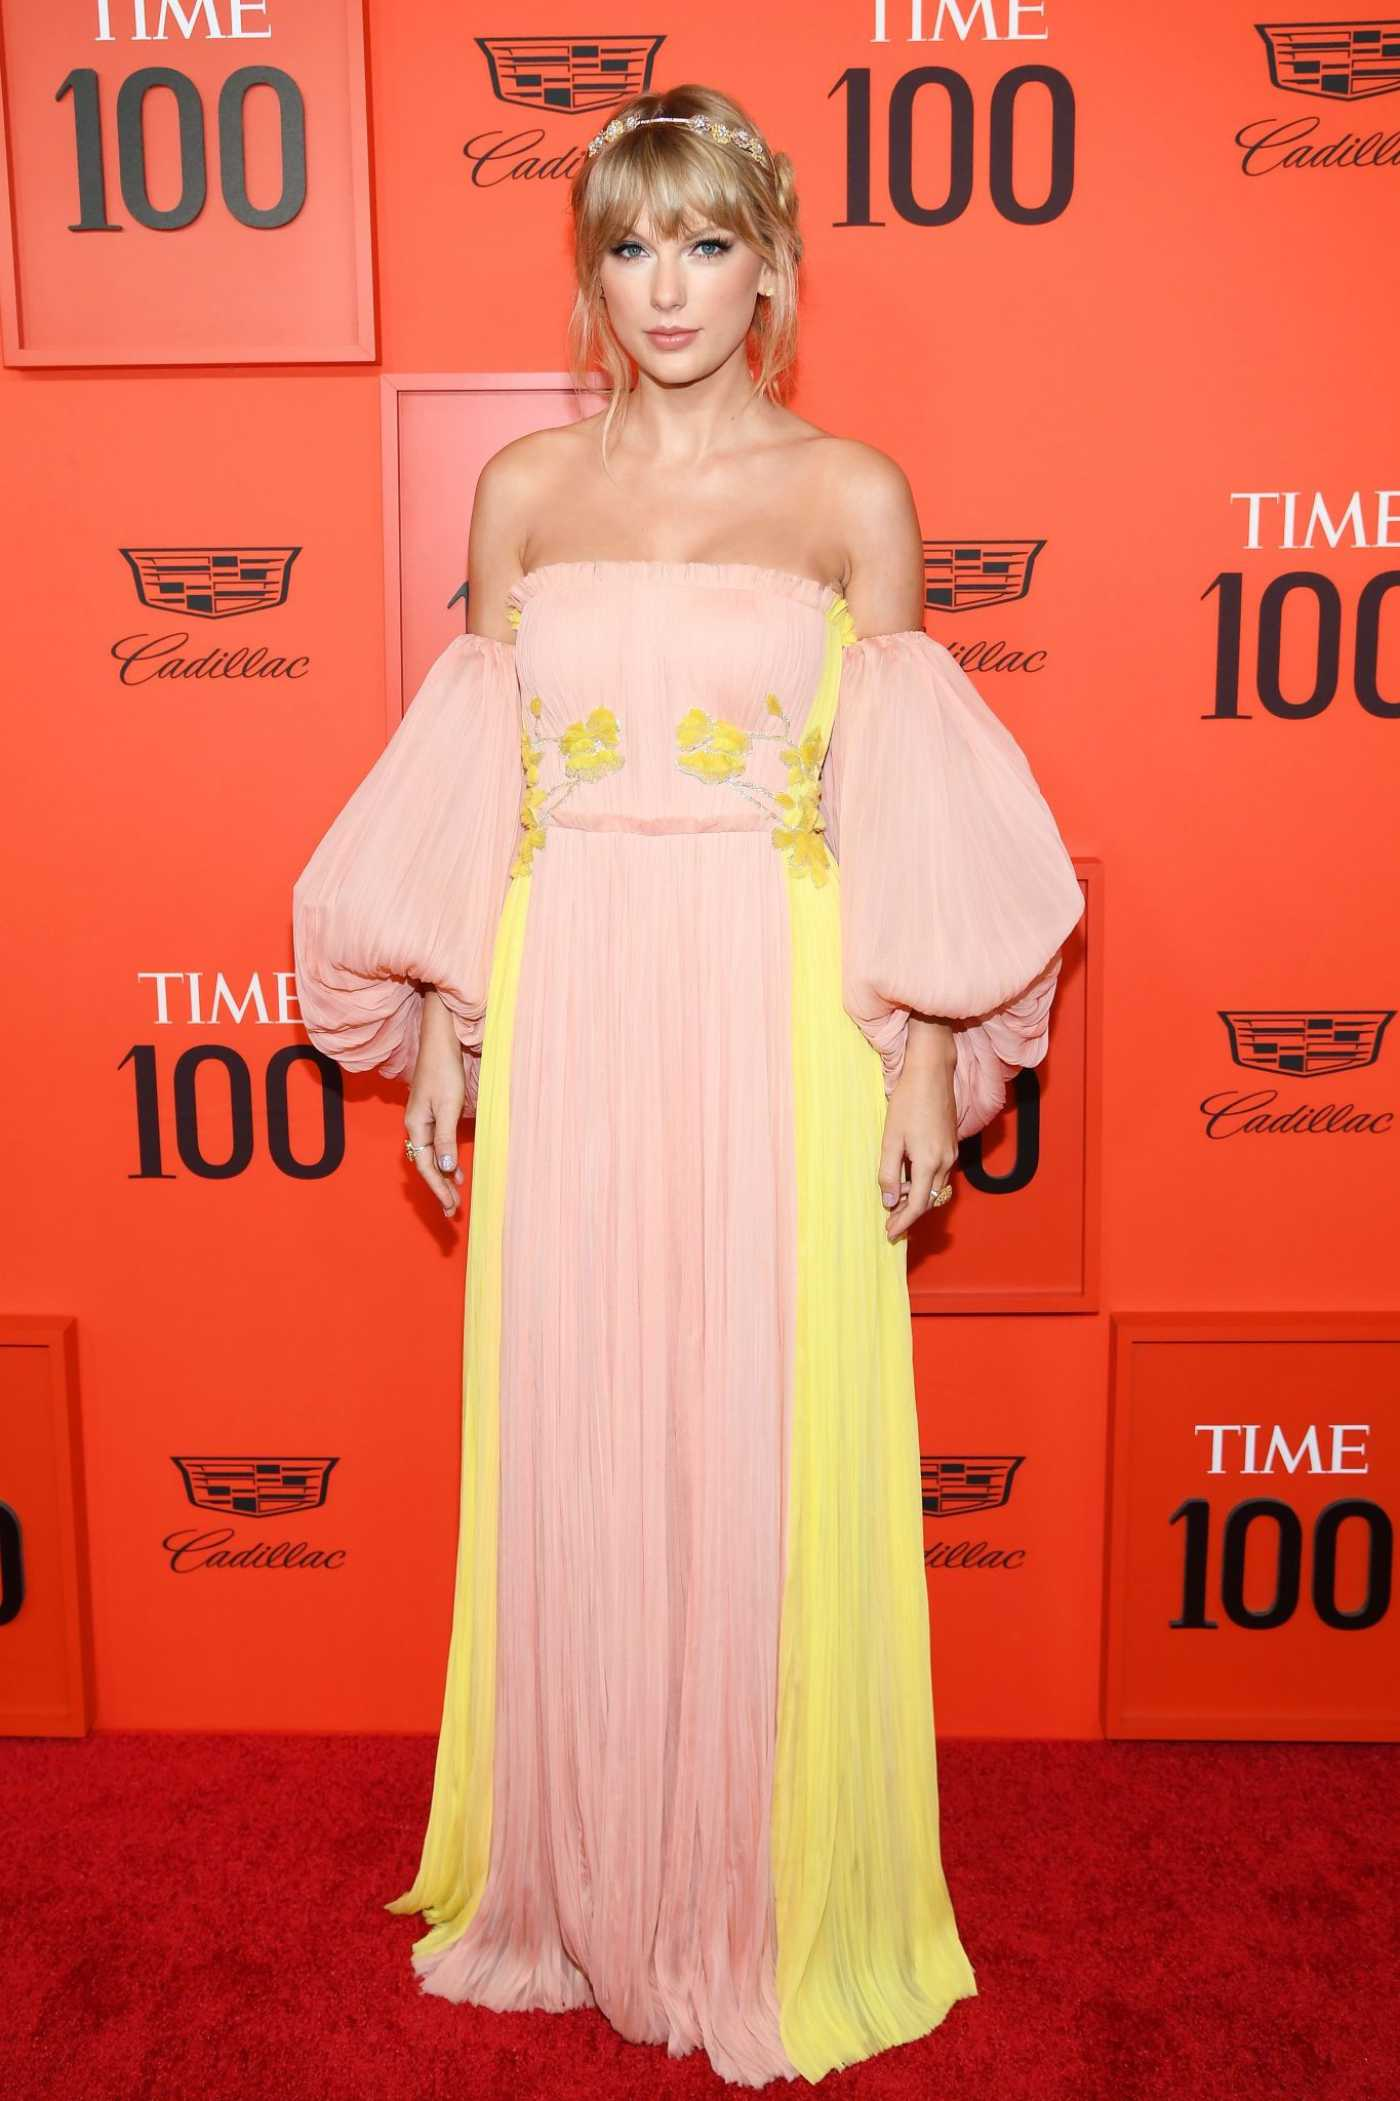 Taylor Swift Attends 2019 TIME 100 Gala at Lincoln Center in NY  04/23/2019